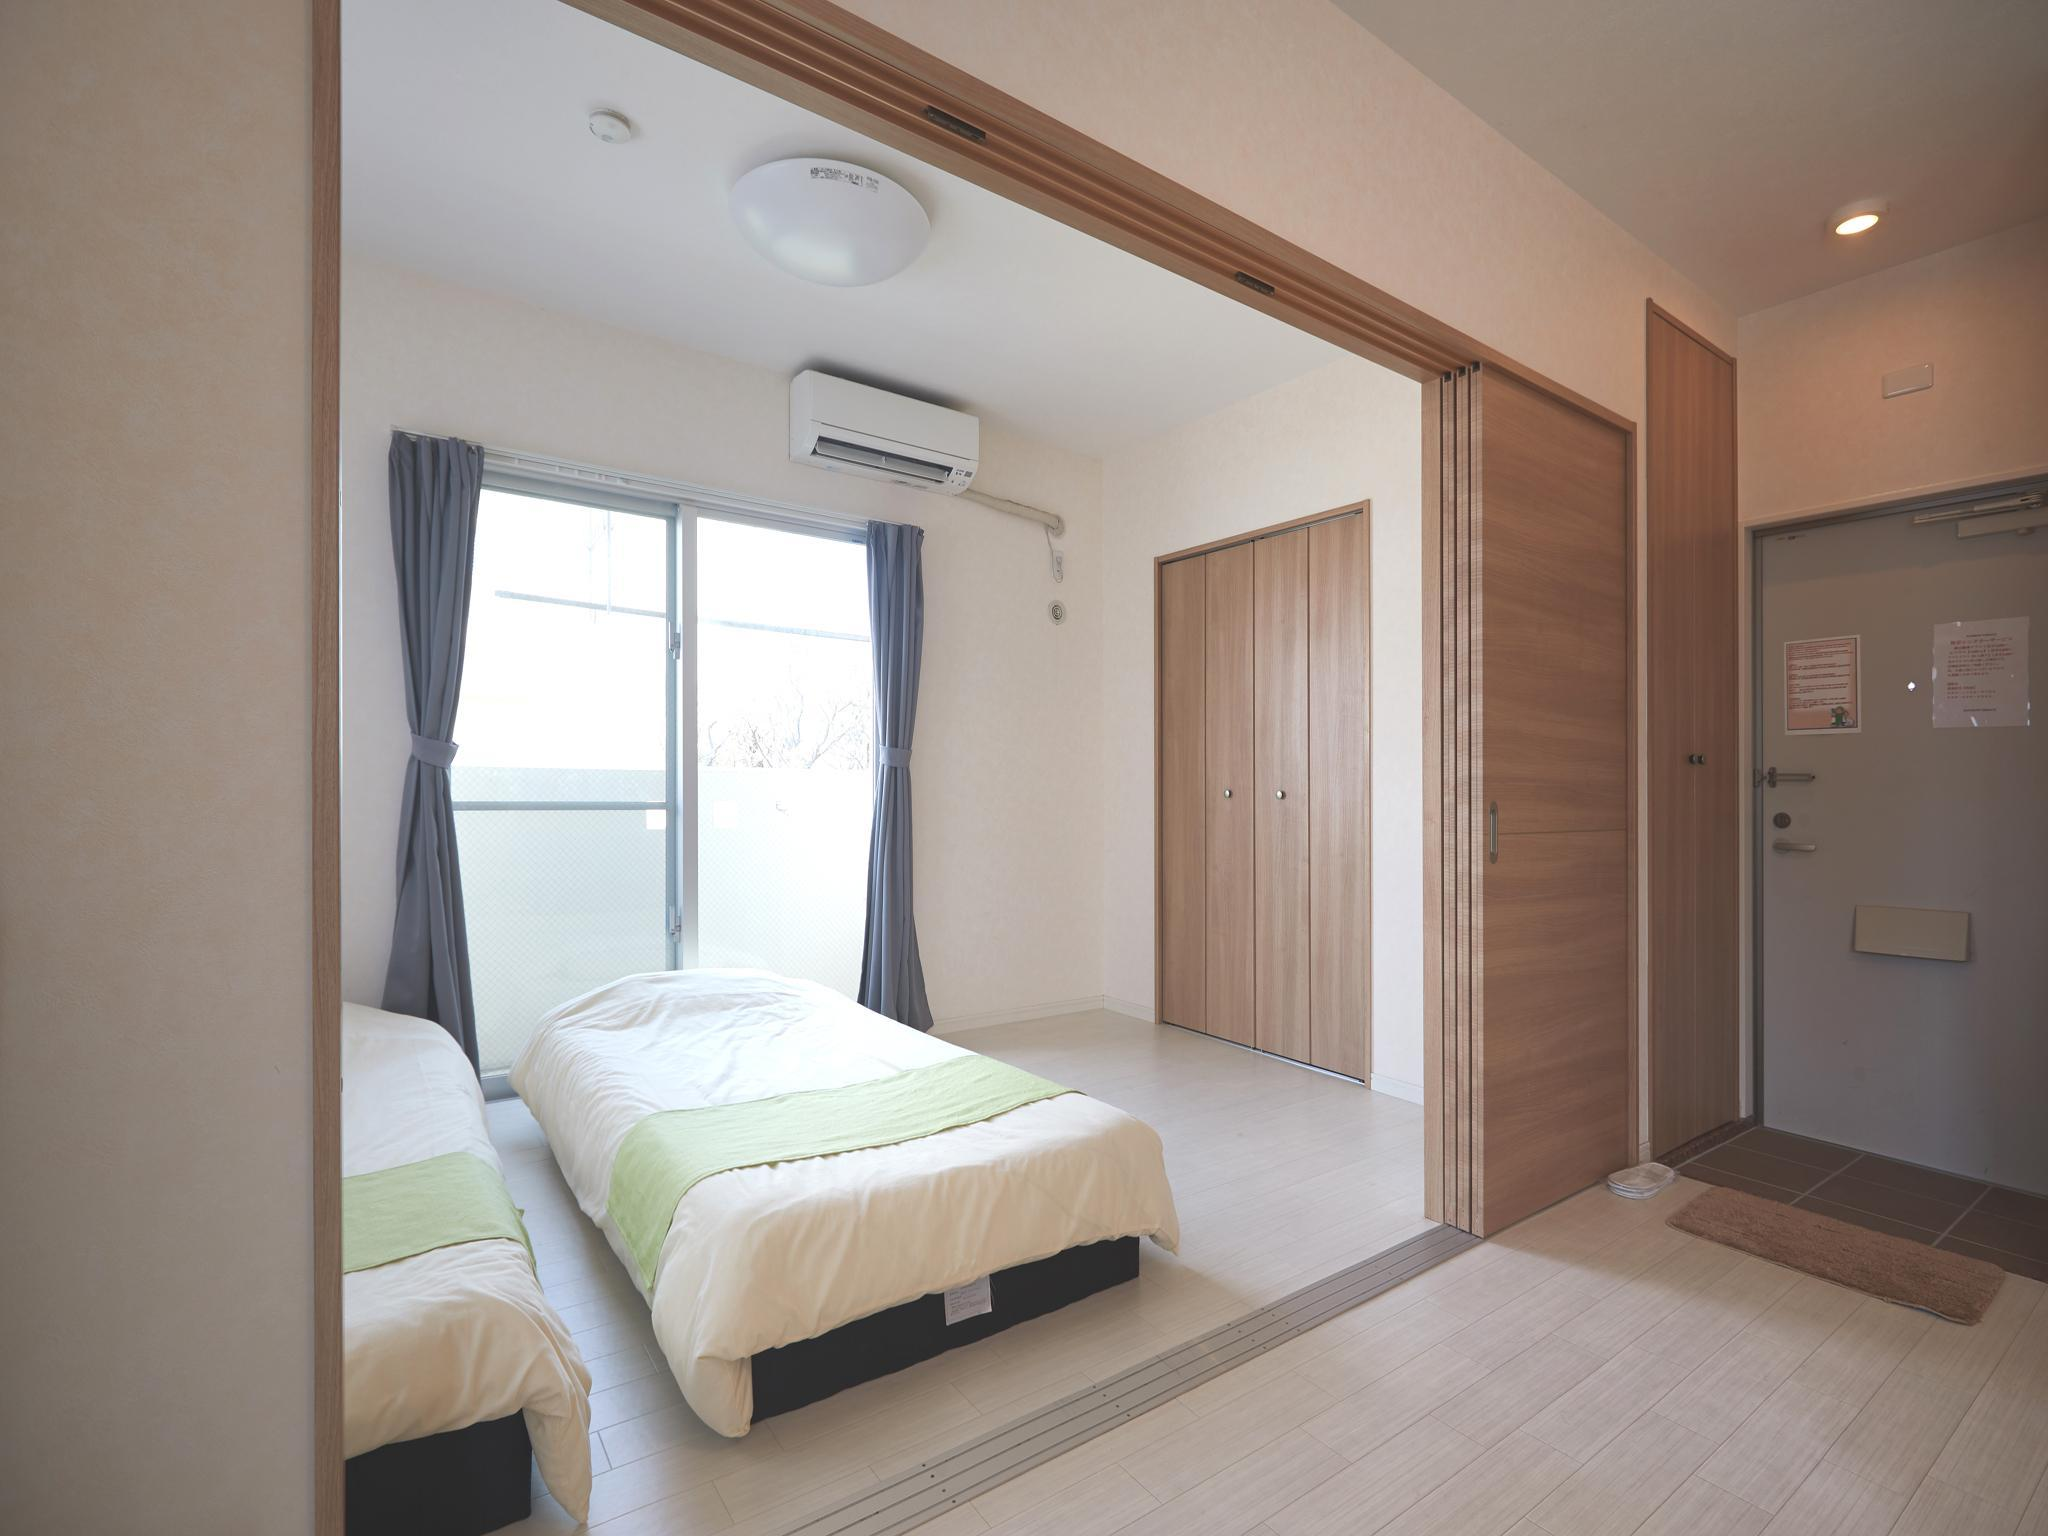 Apartemen (6 Dewasa) (Apartment (6 Adults))